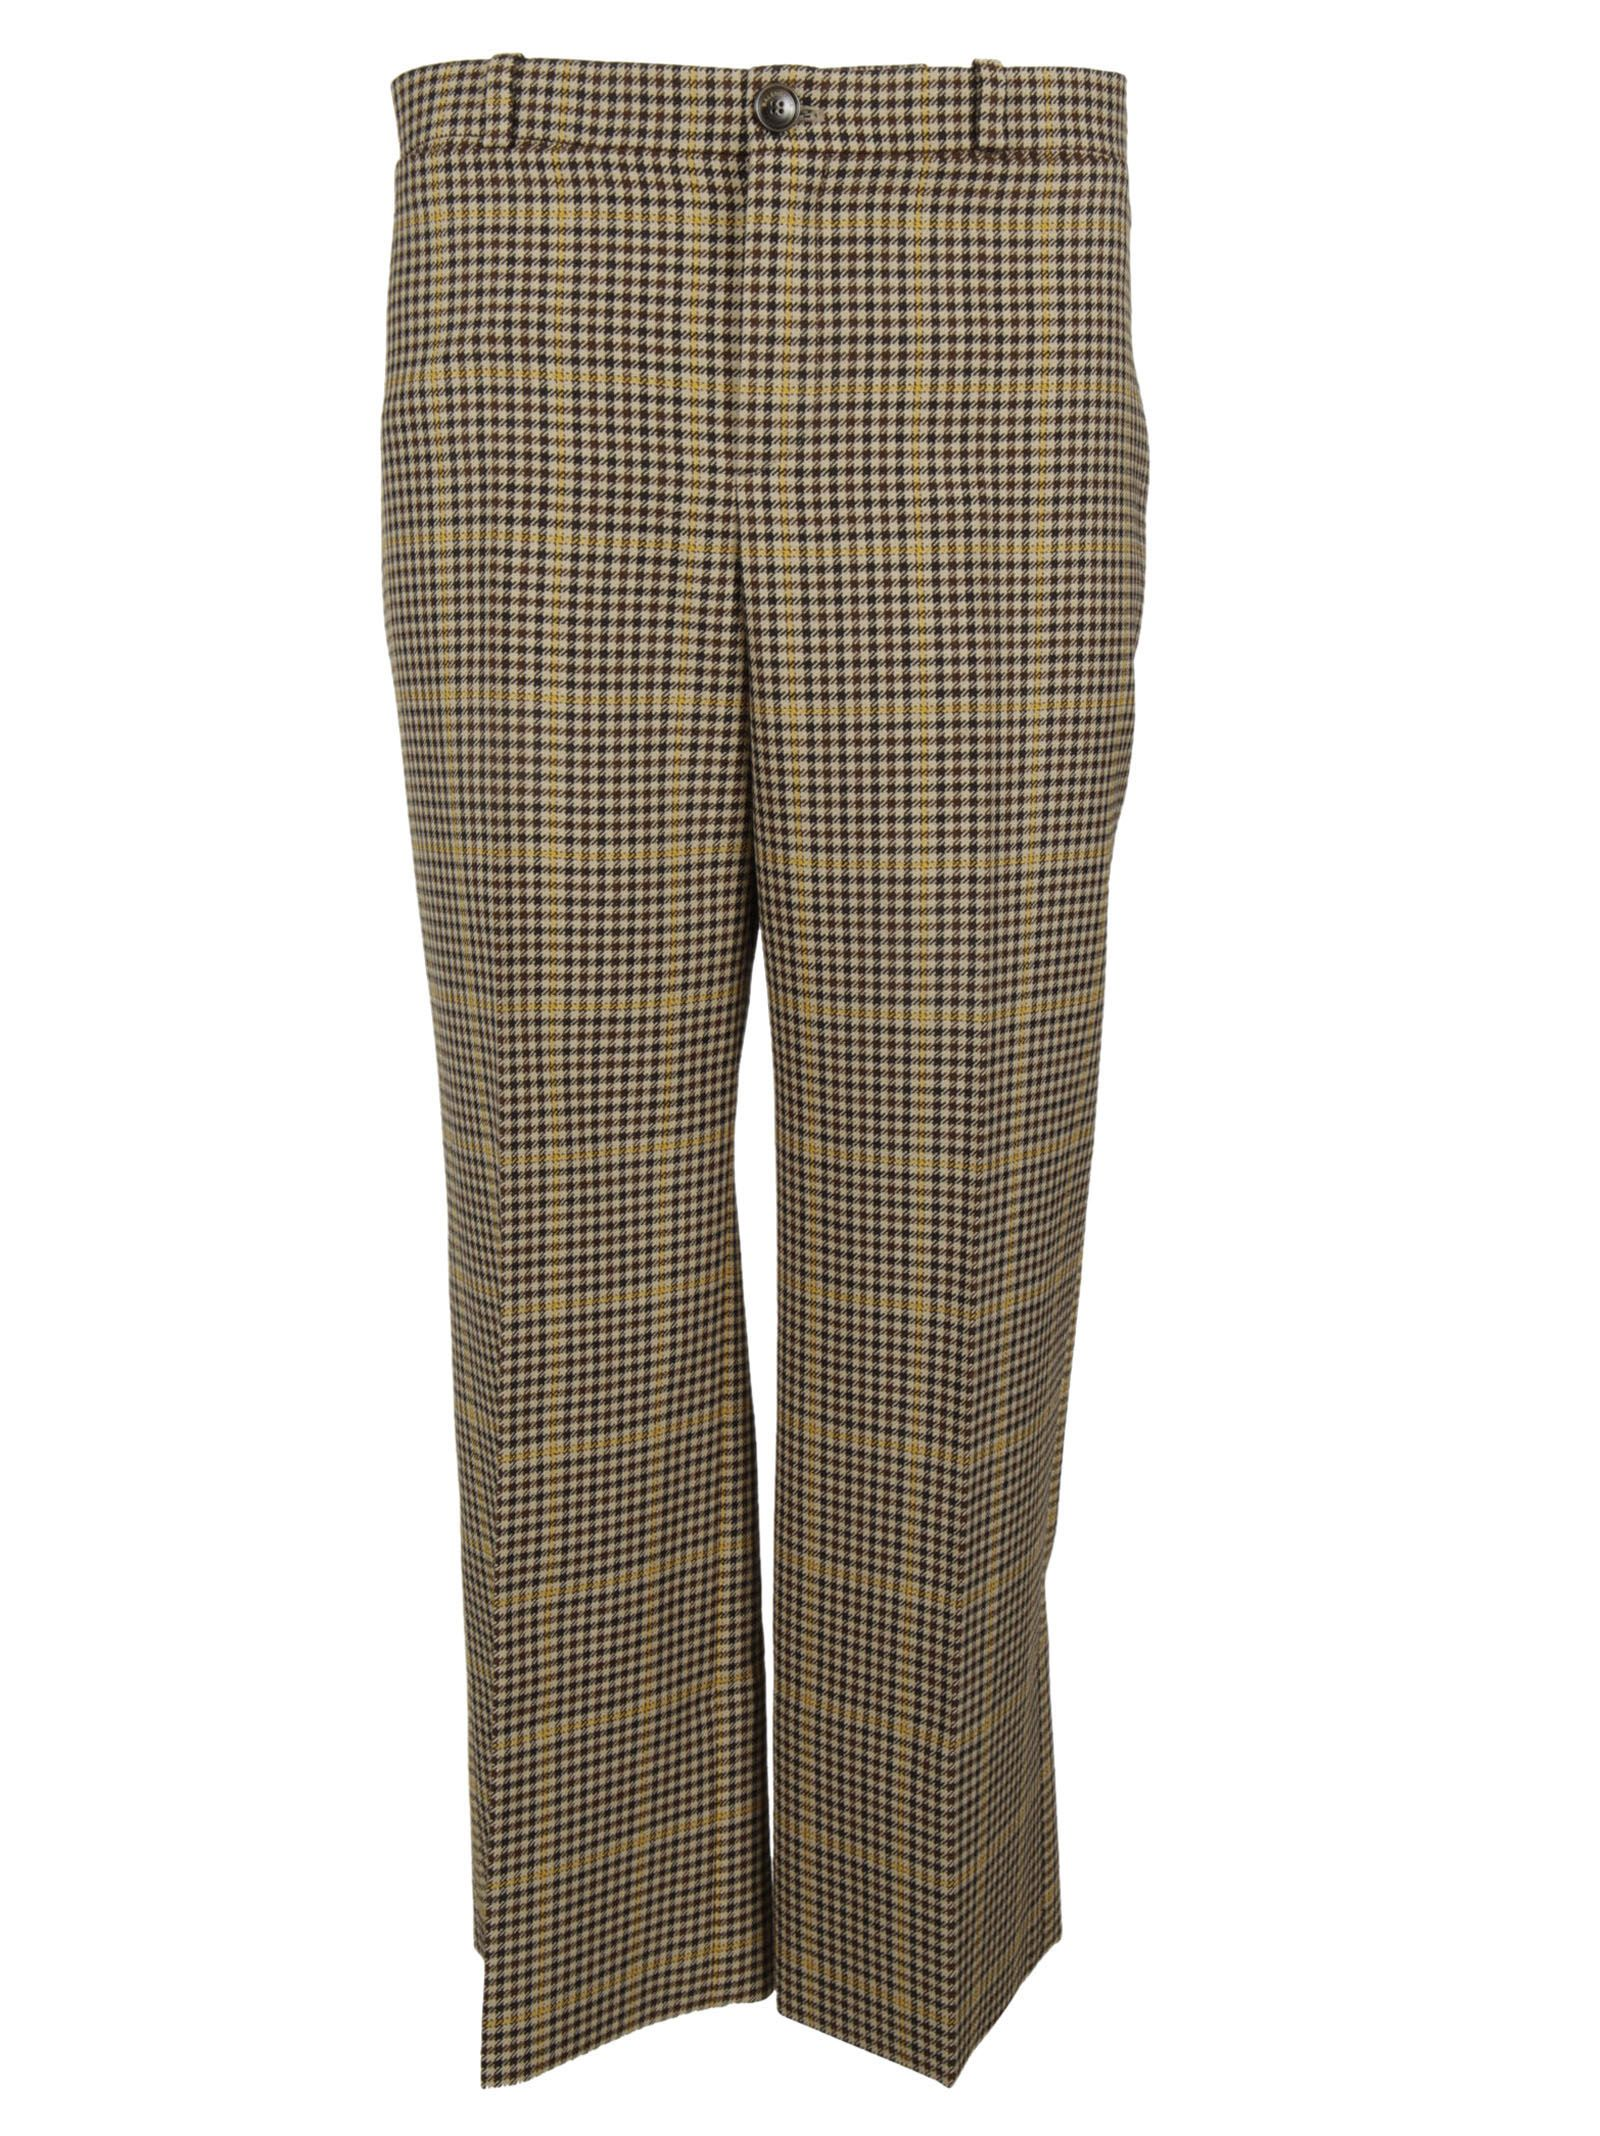 Balenciaga Checked Trousers - Balenciaga - Neri